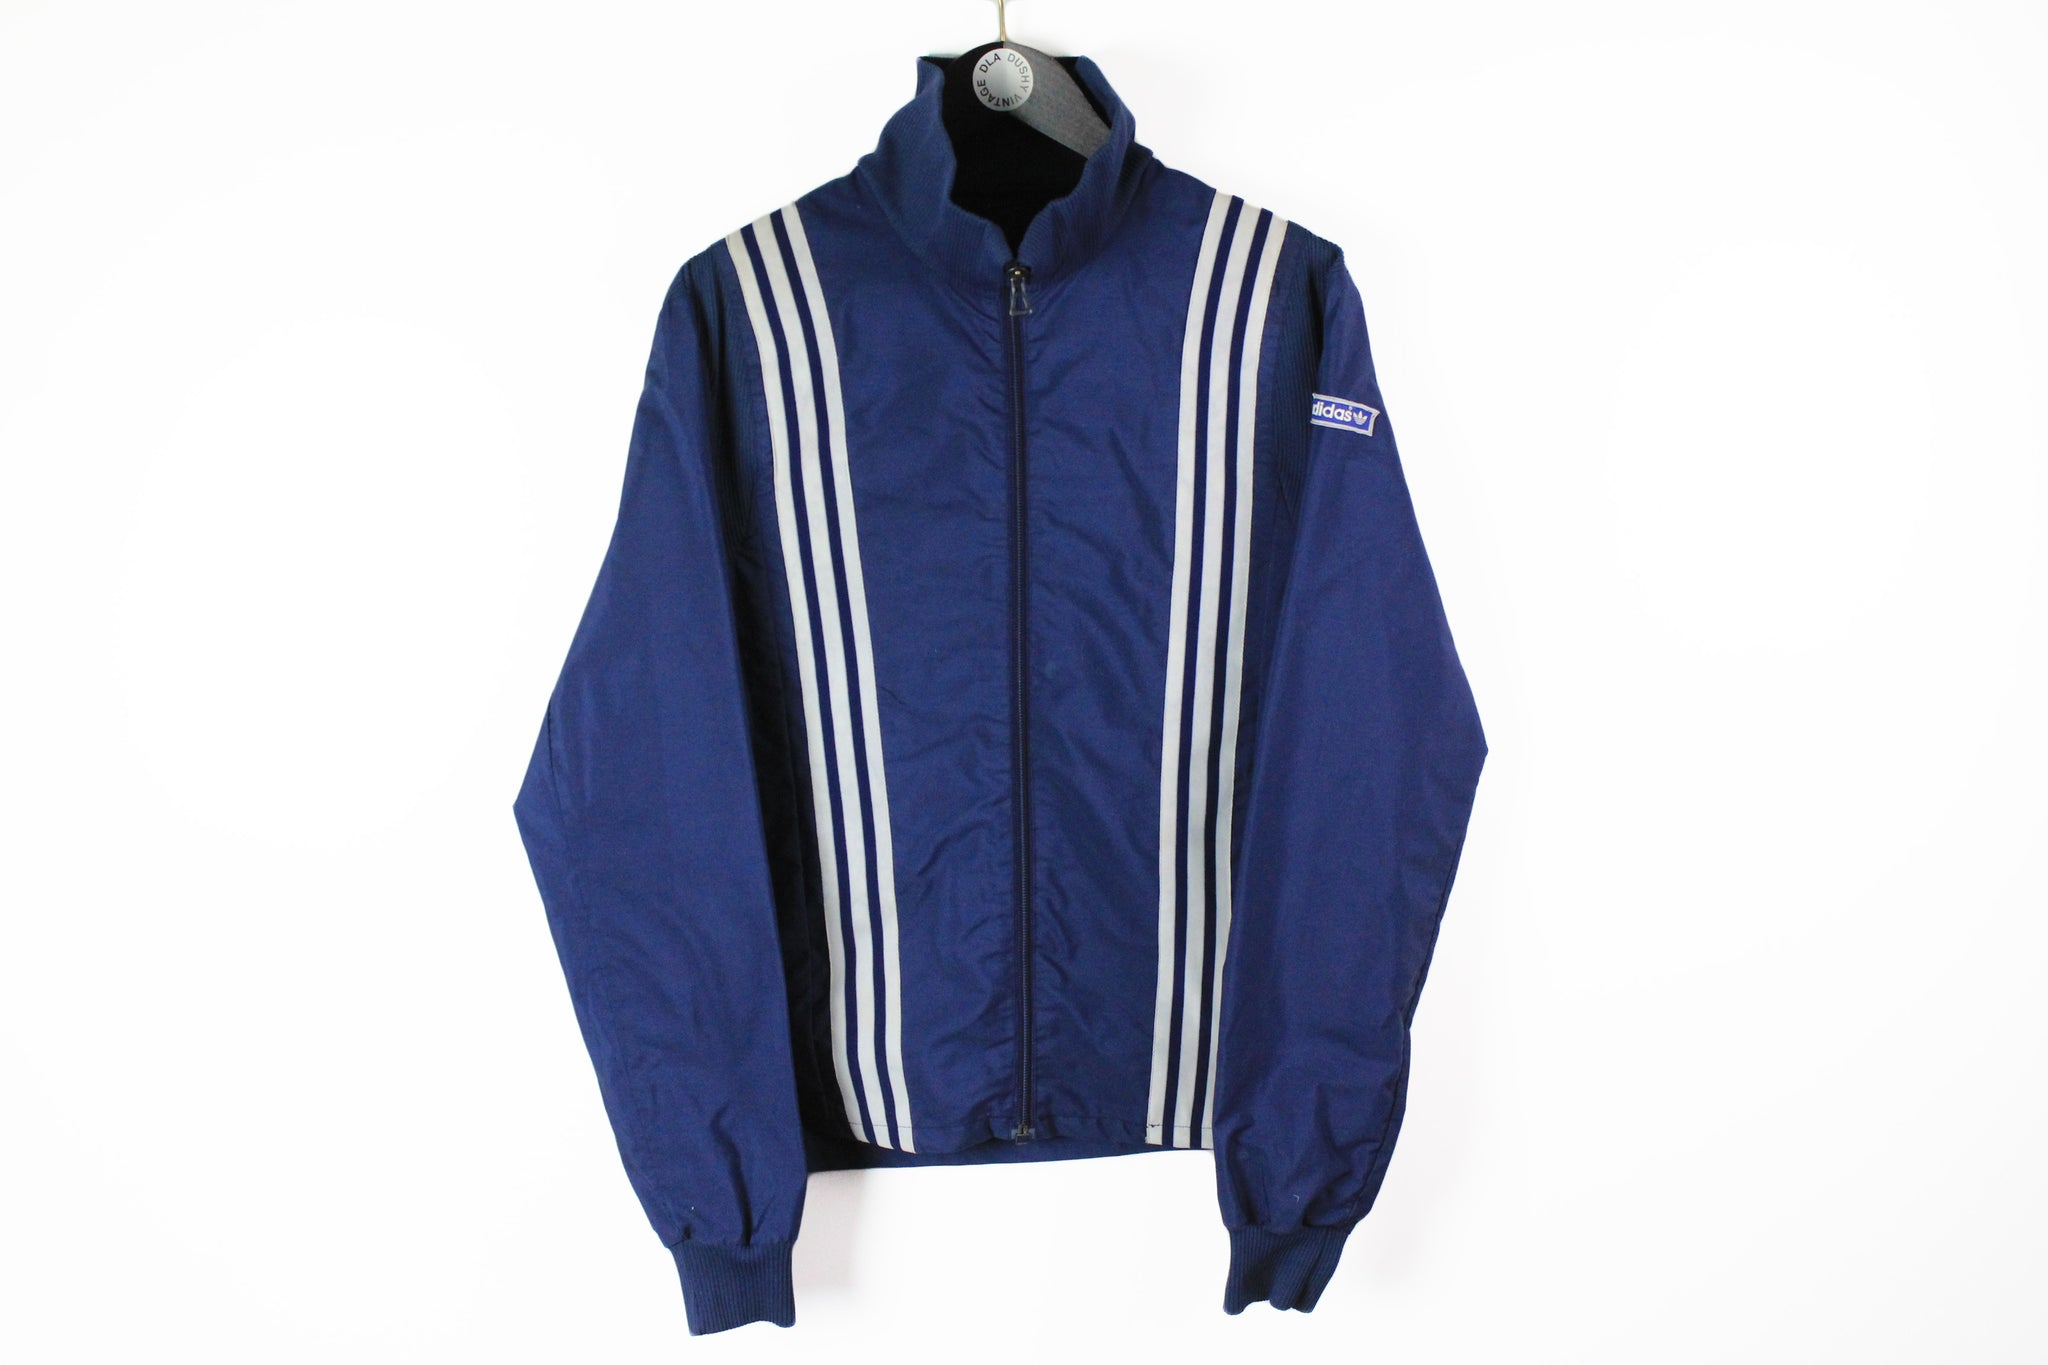 Vintage Adidas Track Jacket Large 70s blue sport white stripes windbreaker